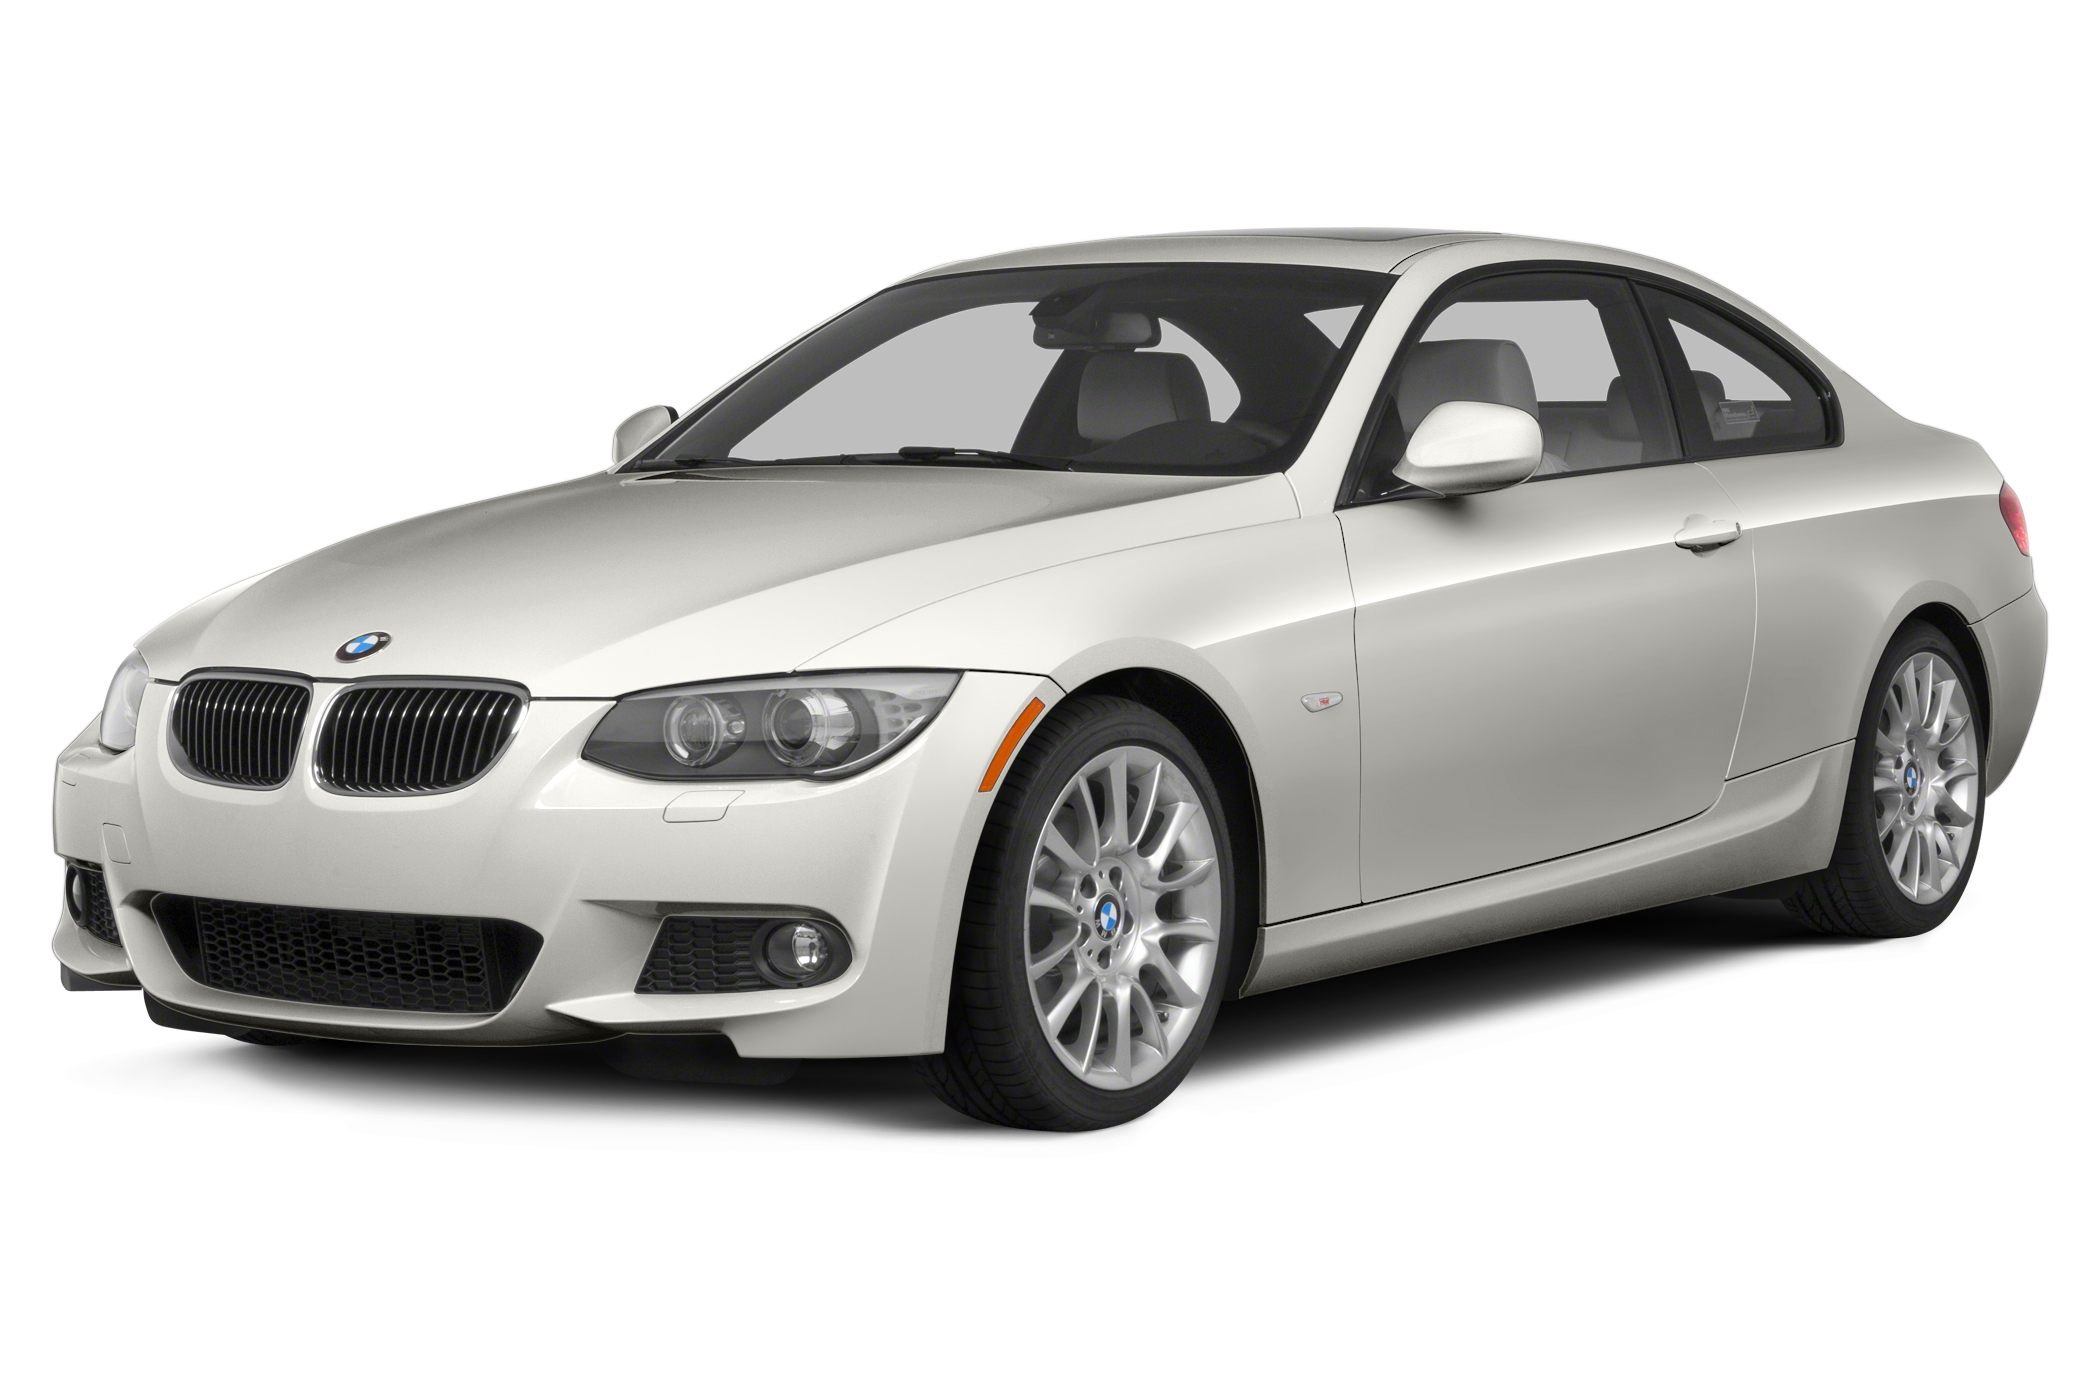 2013 BMW 328 I XDrive Coupe for sale in Baltimore for $31,990 with 20,808 miles.